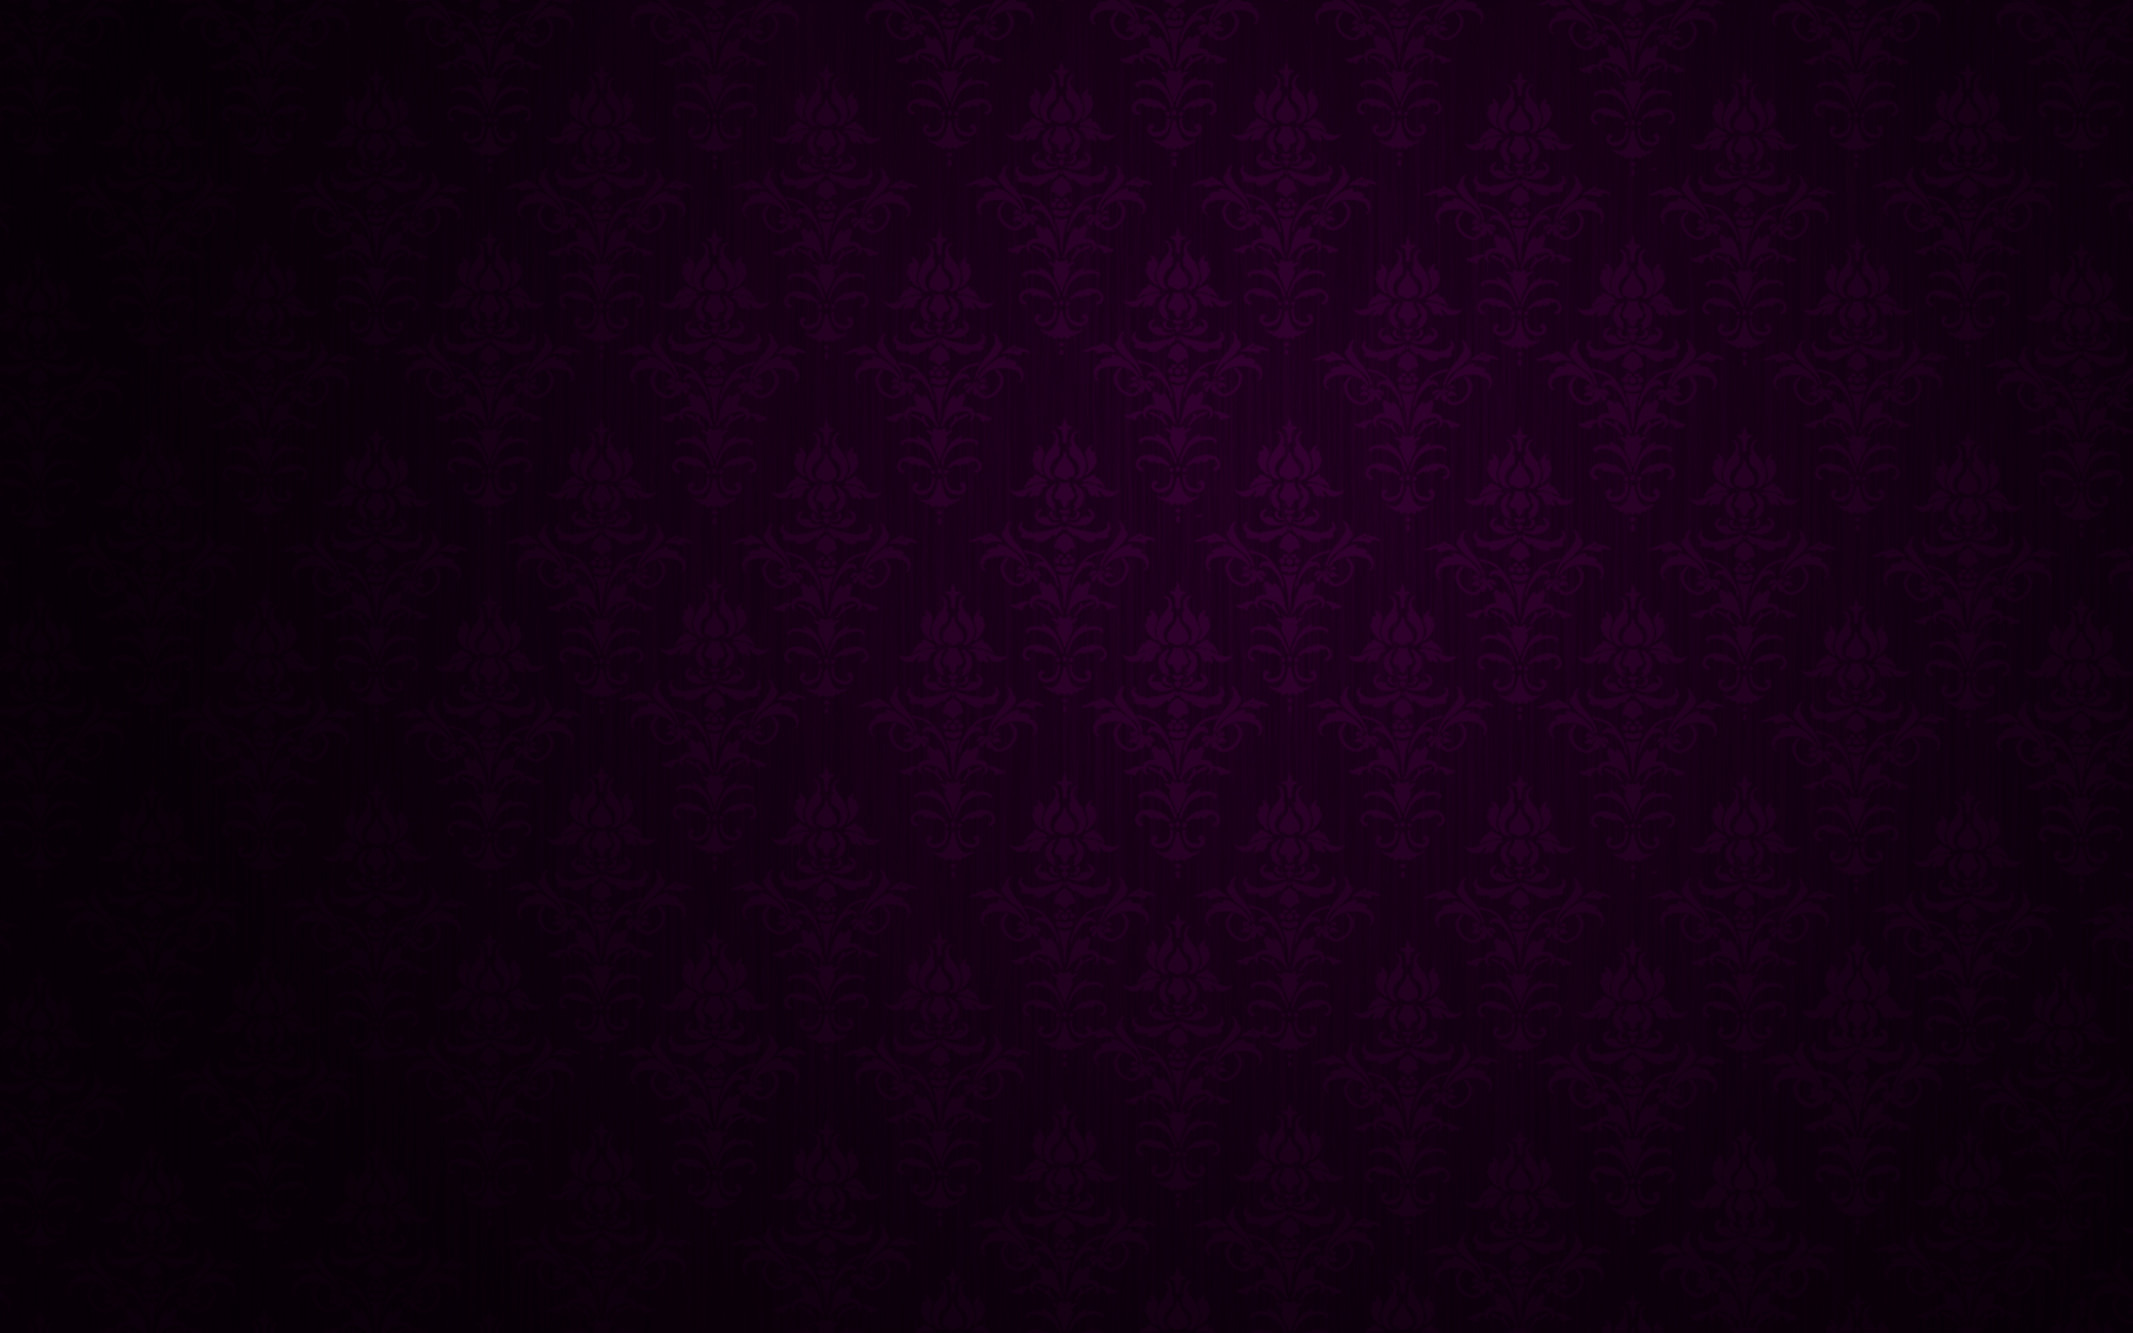 2133x1333 Alf img - Showing > Dark Purple Backgrounds Tumblr